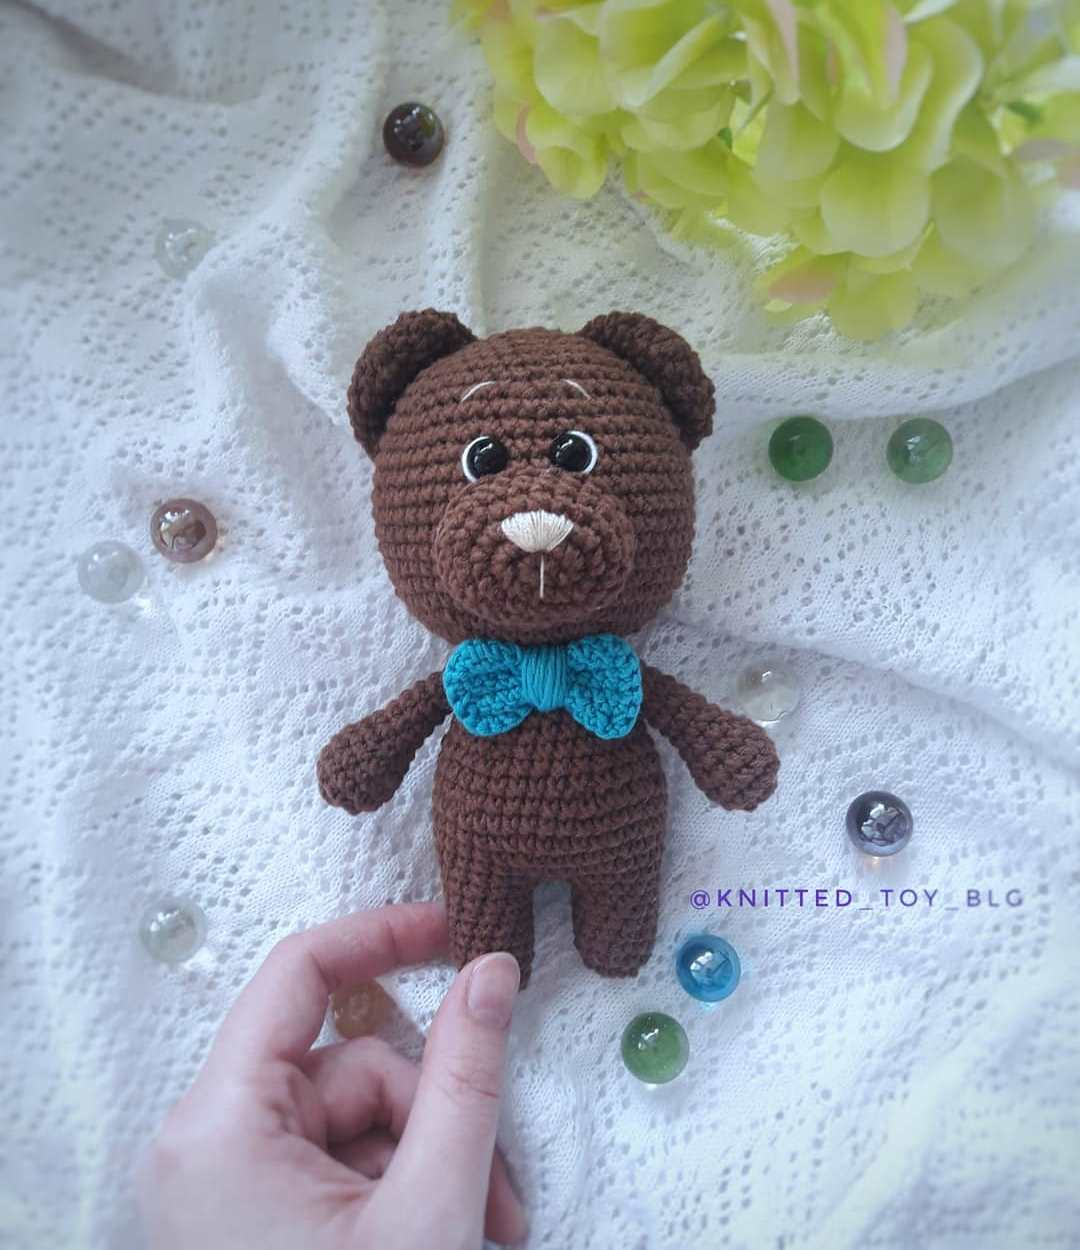 Free Crochet Patterns | Crochet Pattern Amigurumi Teddy Bear ... | 1250x1080